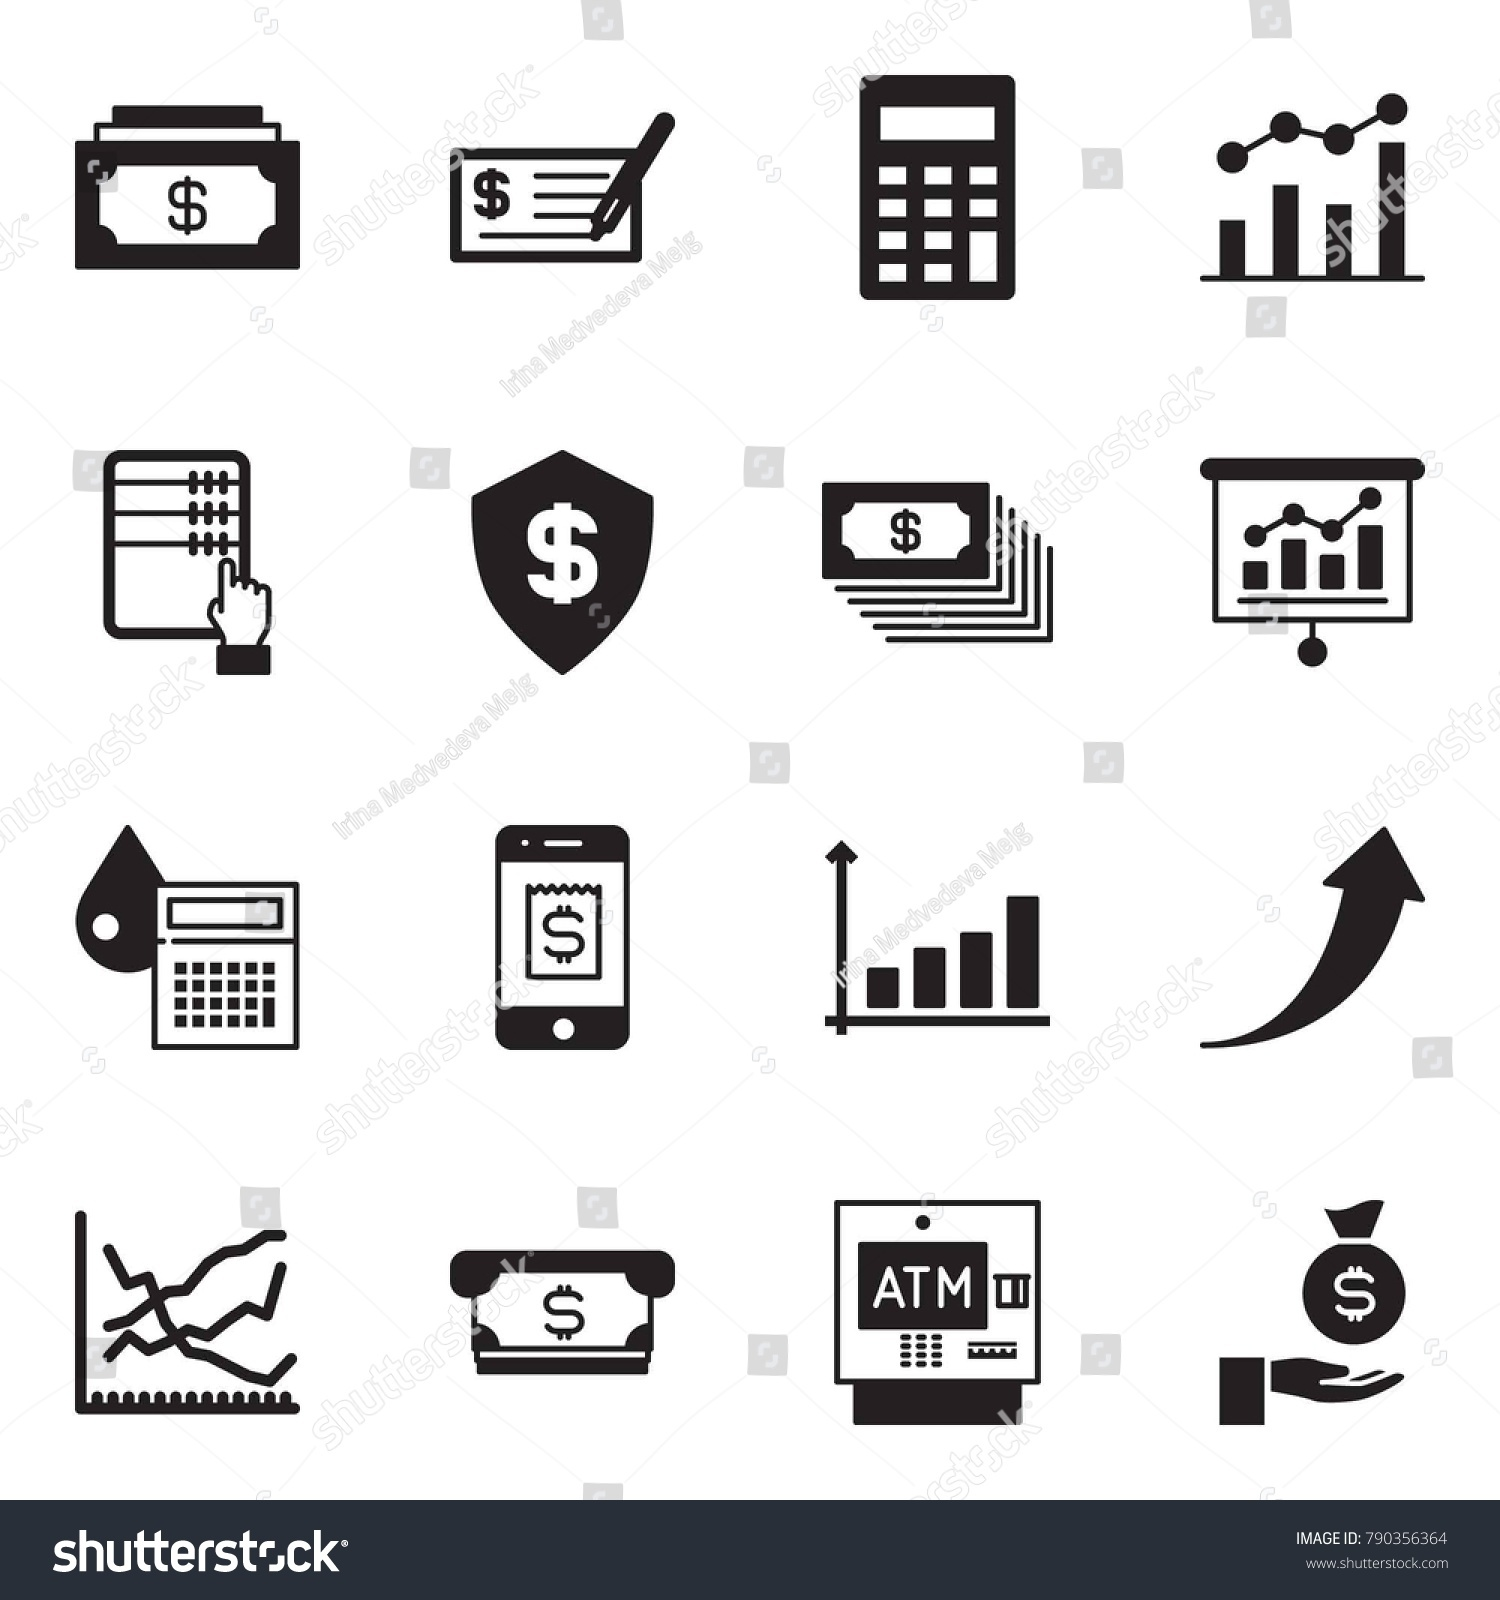 Solid black vector icon set cash stock vector 790356364 shutterstock solid black vector icon set cash vector check calculator chart abacus geenschuldenfo Choice Image